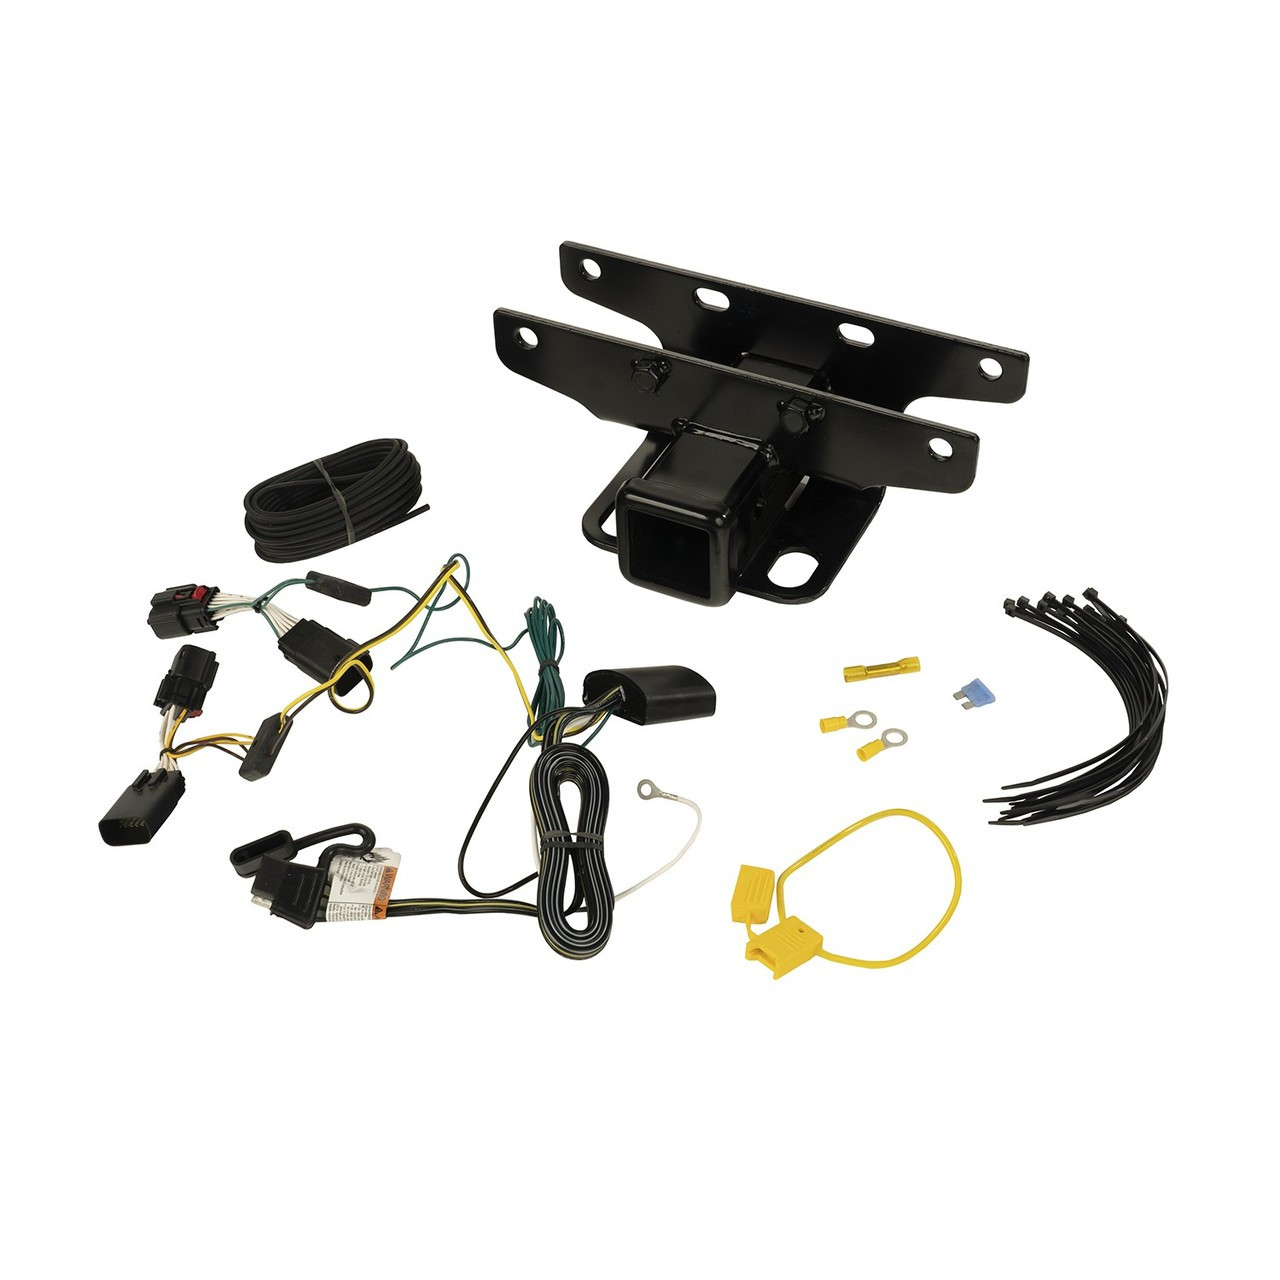 hight resolution of jeep wrangler jl receiver hitch kit w wiring harness 18 19 jl